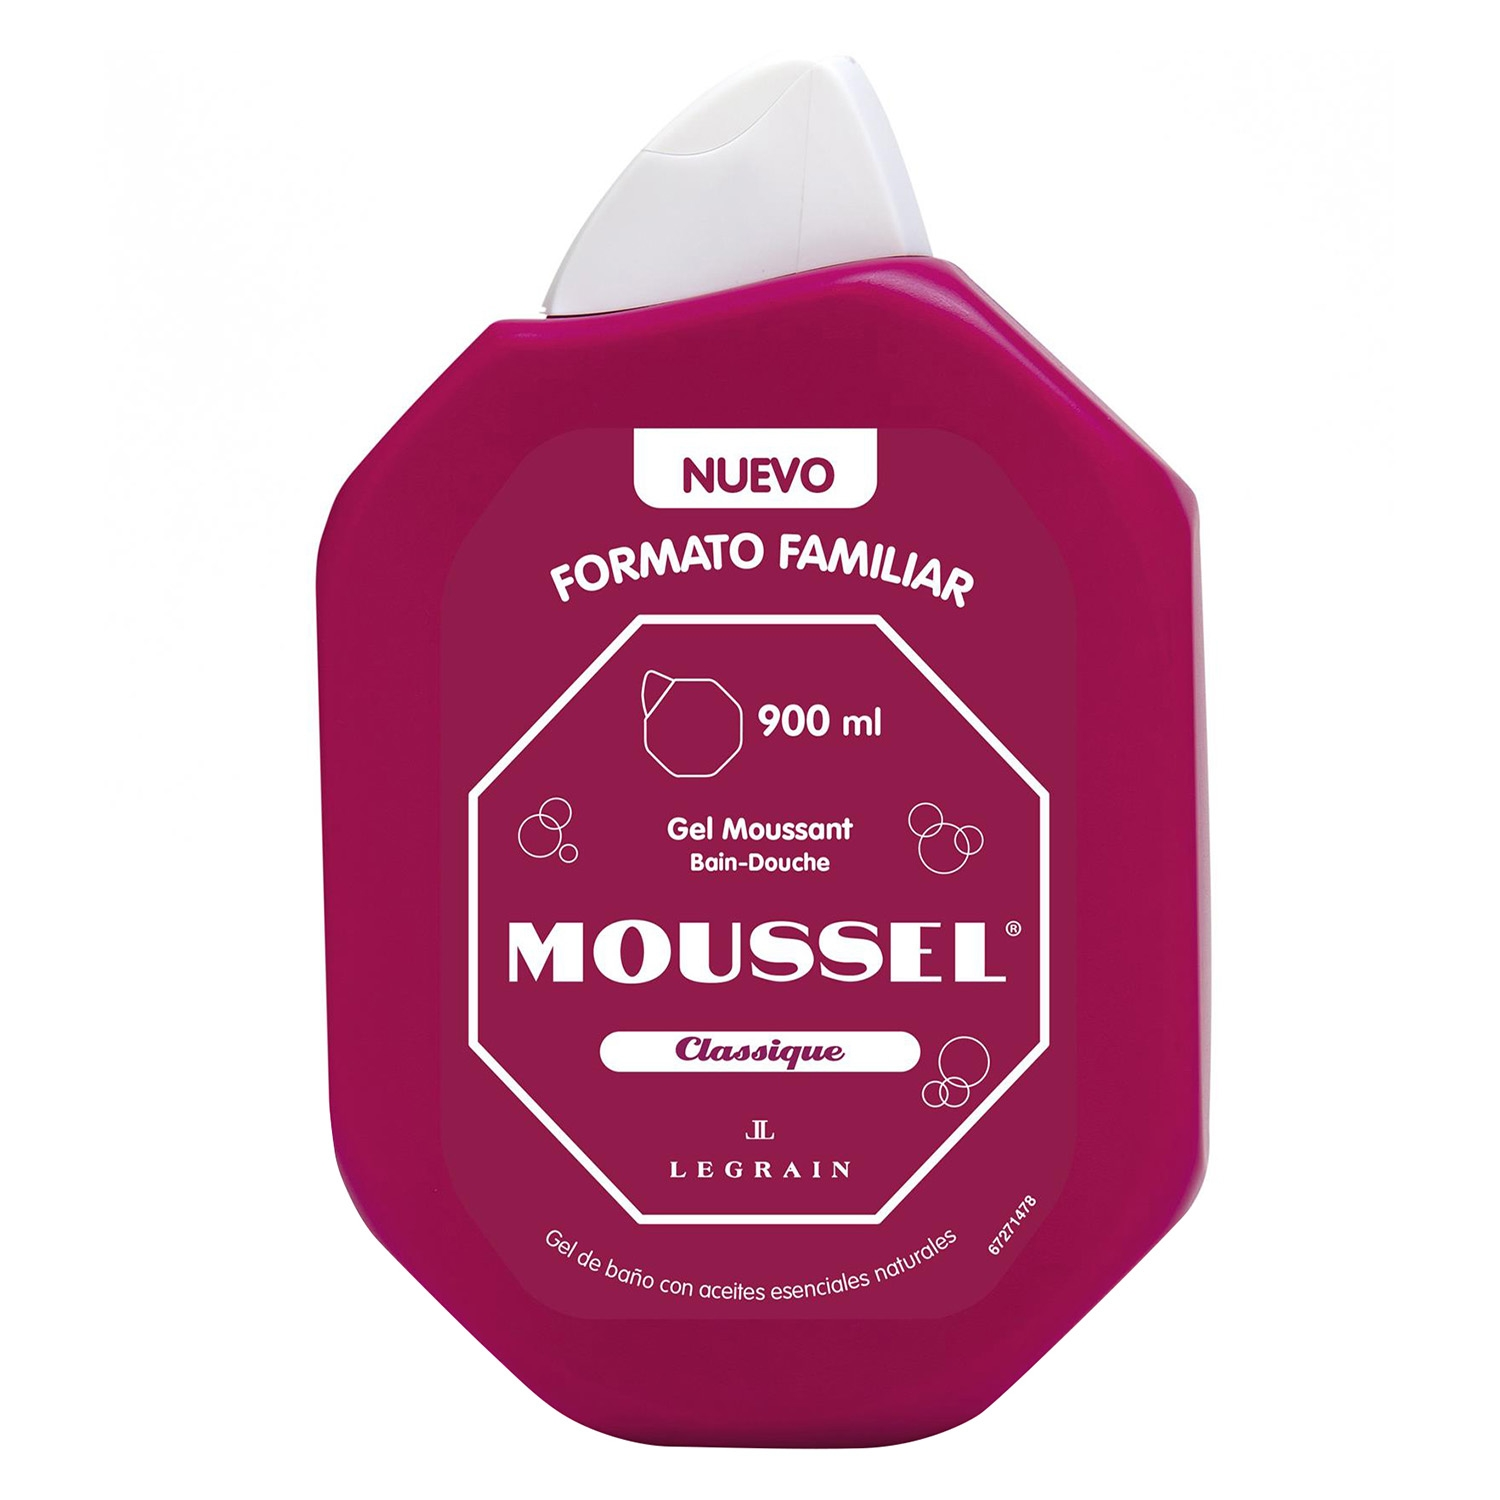 Gel de ducha clásico Moussel 900 ml.